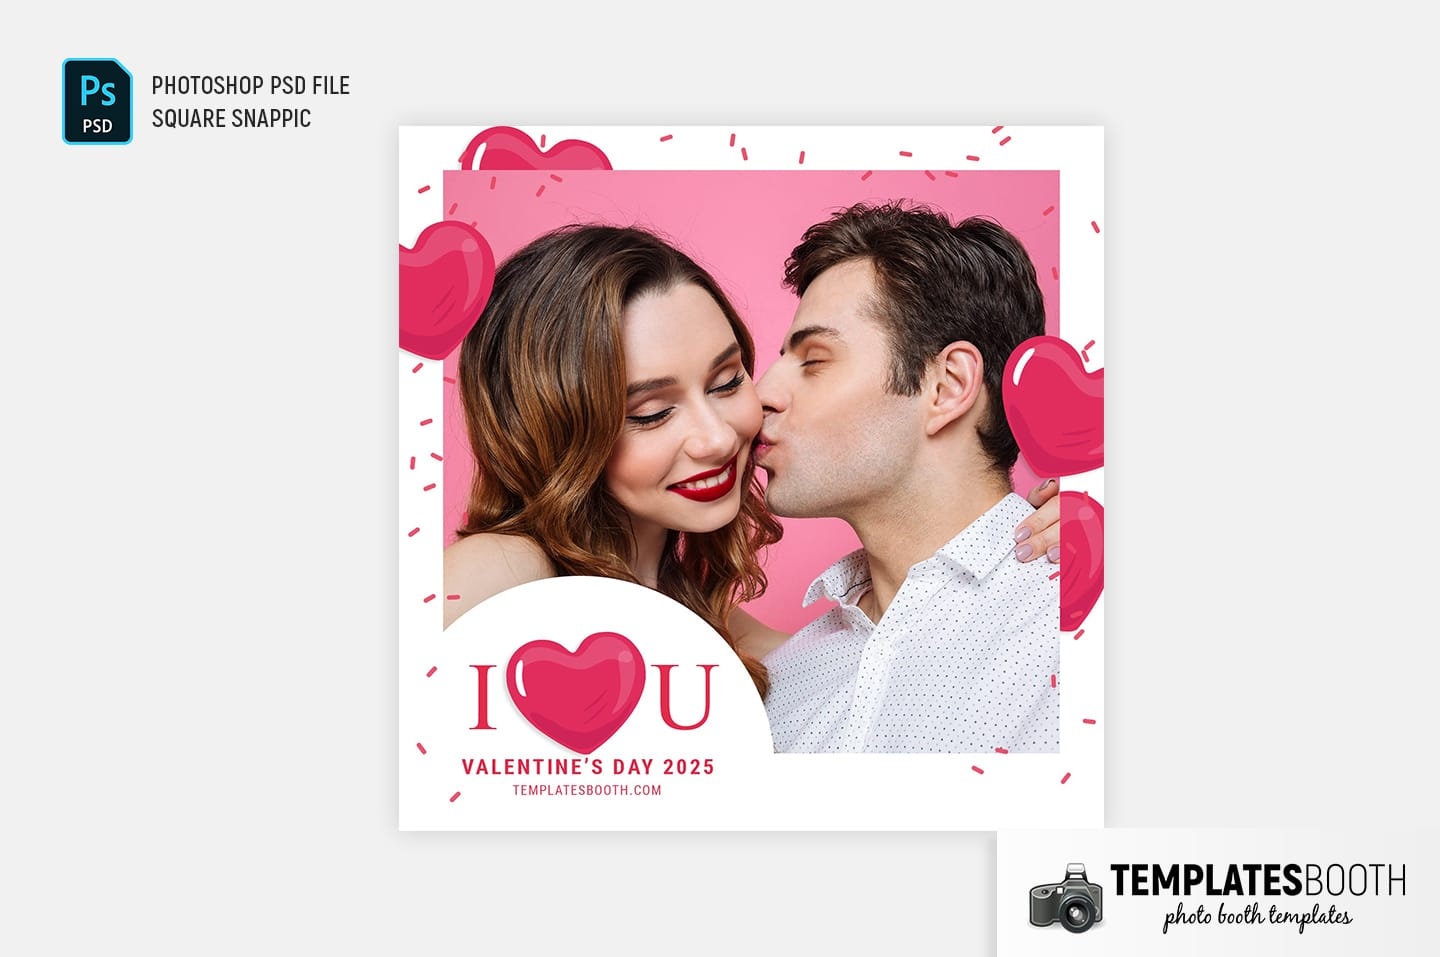 I Love You Valentine's Day Photo Booth Template (For Snappic)